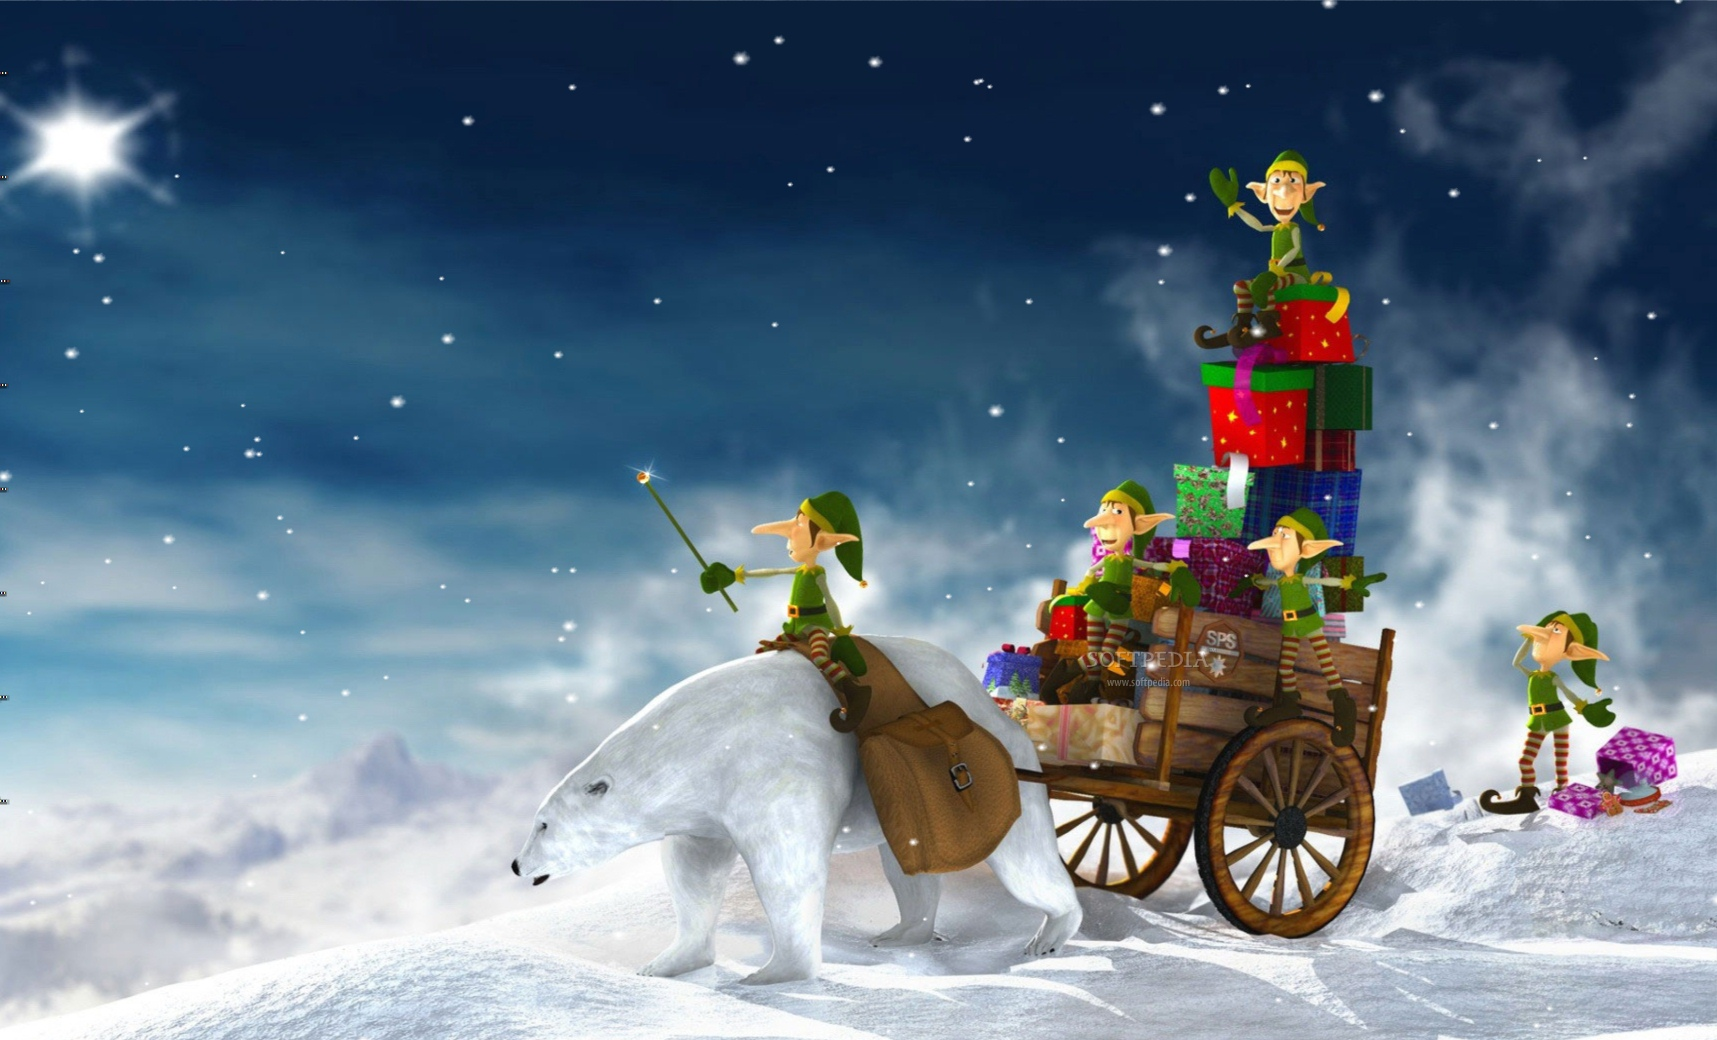 Santas Elves Animated Desktop Wallpaper   This is the image that will 1717x1040